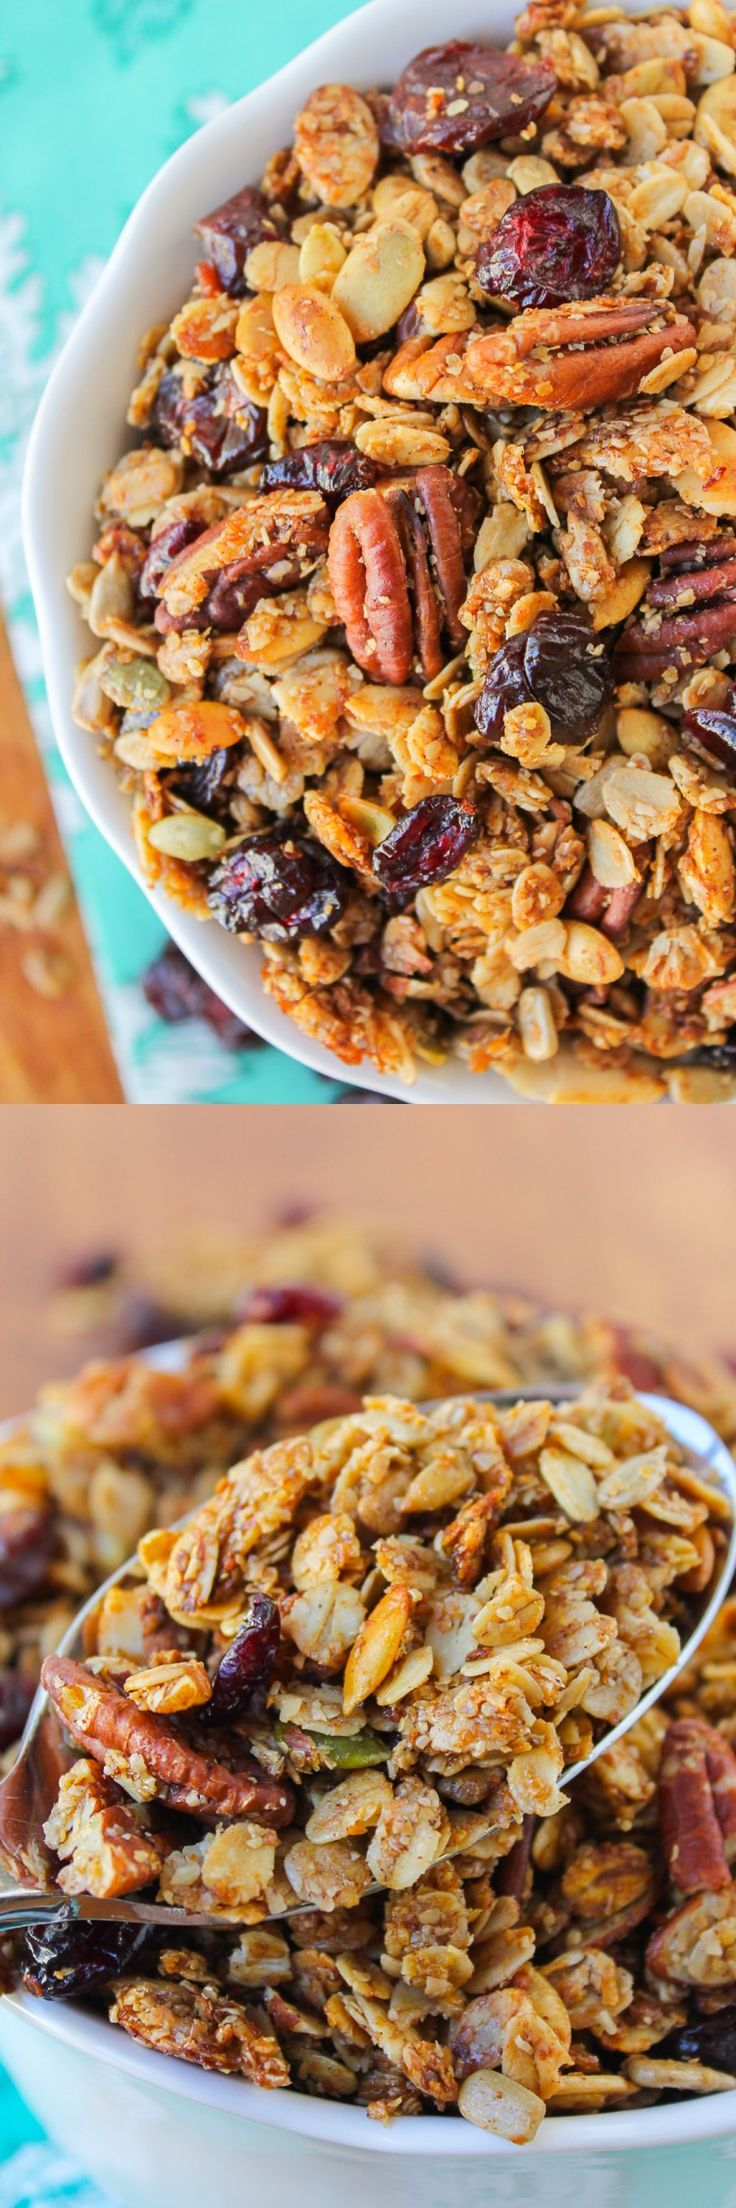 Maple Pecan Granola with Cherries from TheFoodCharlatan.com This easy recipe comes together quick and makes a ton! A great make-ahead recipe for busy morning.